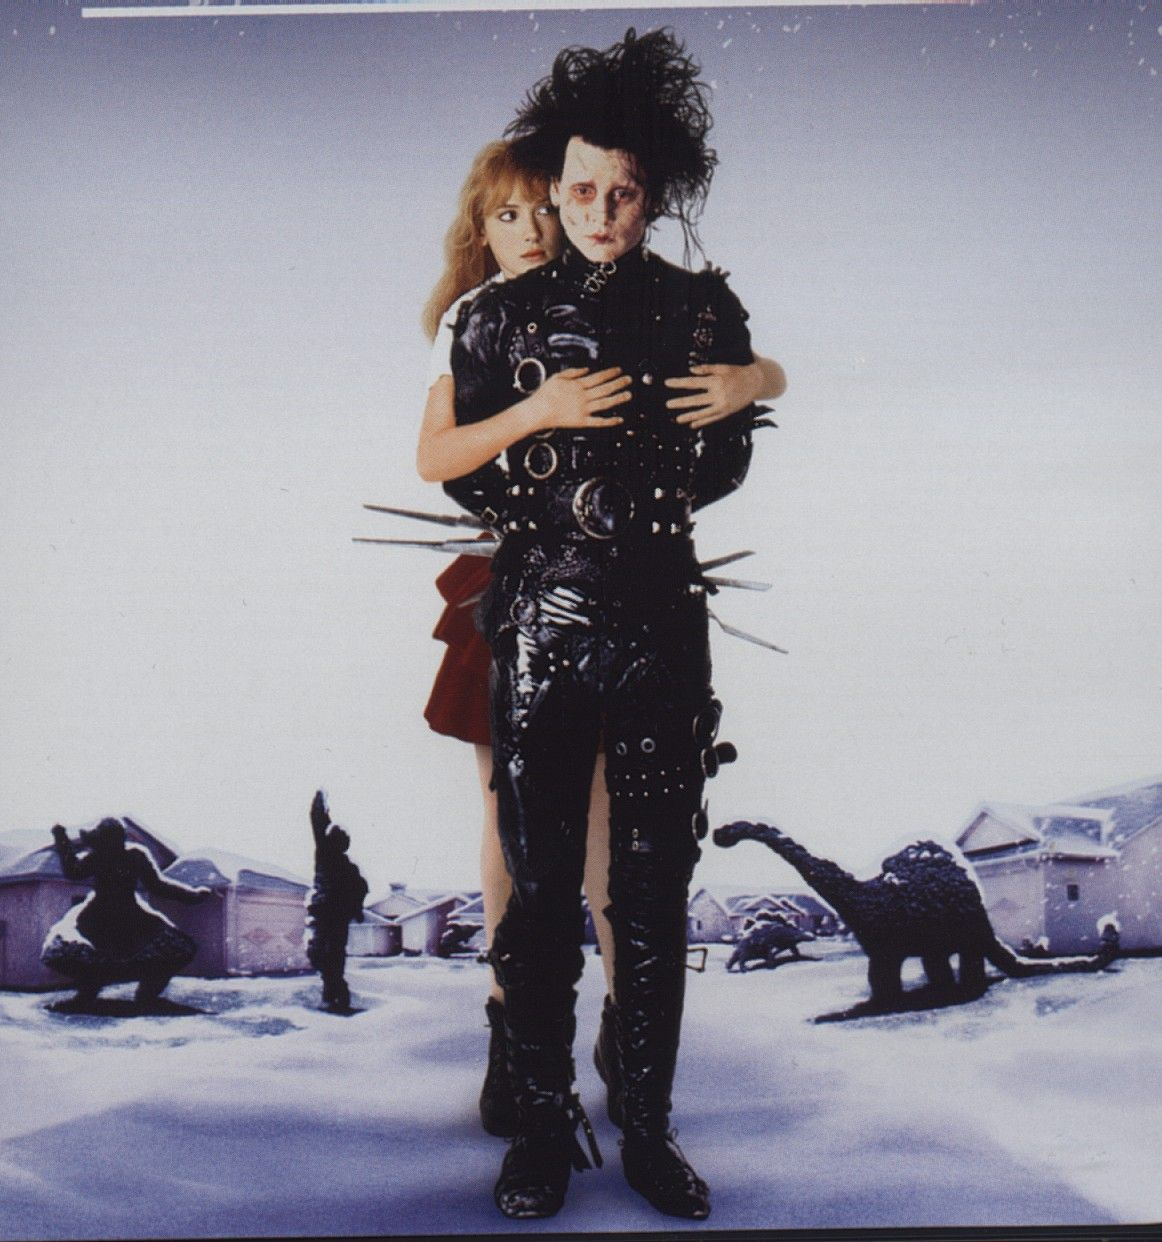 http://images.fanpop.com/images/image_uploads/edward-scissorhands-johnny-depp-180747_1162_1242.jpg